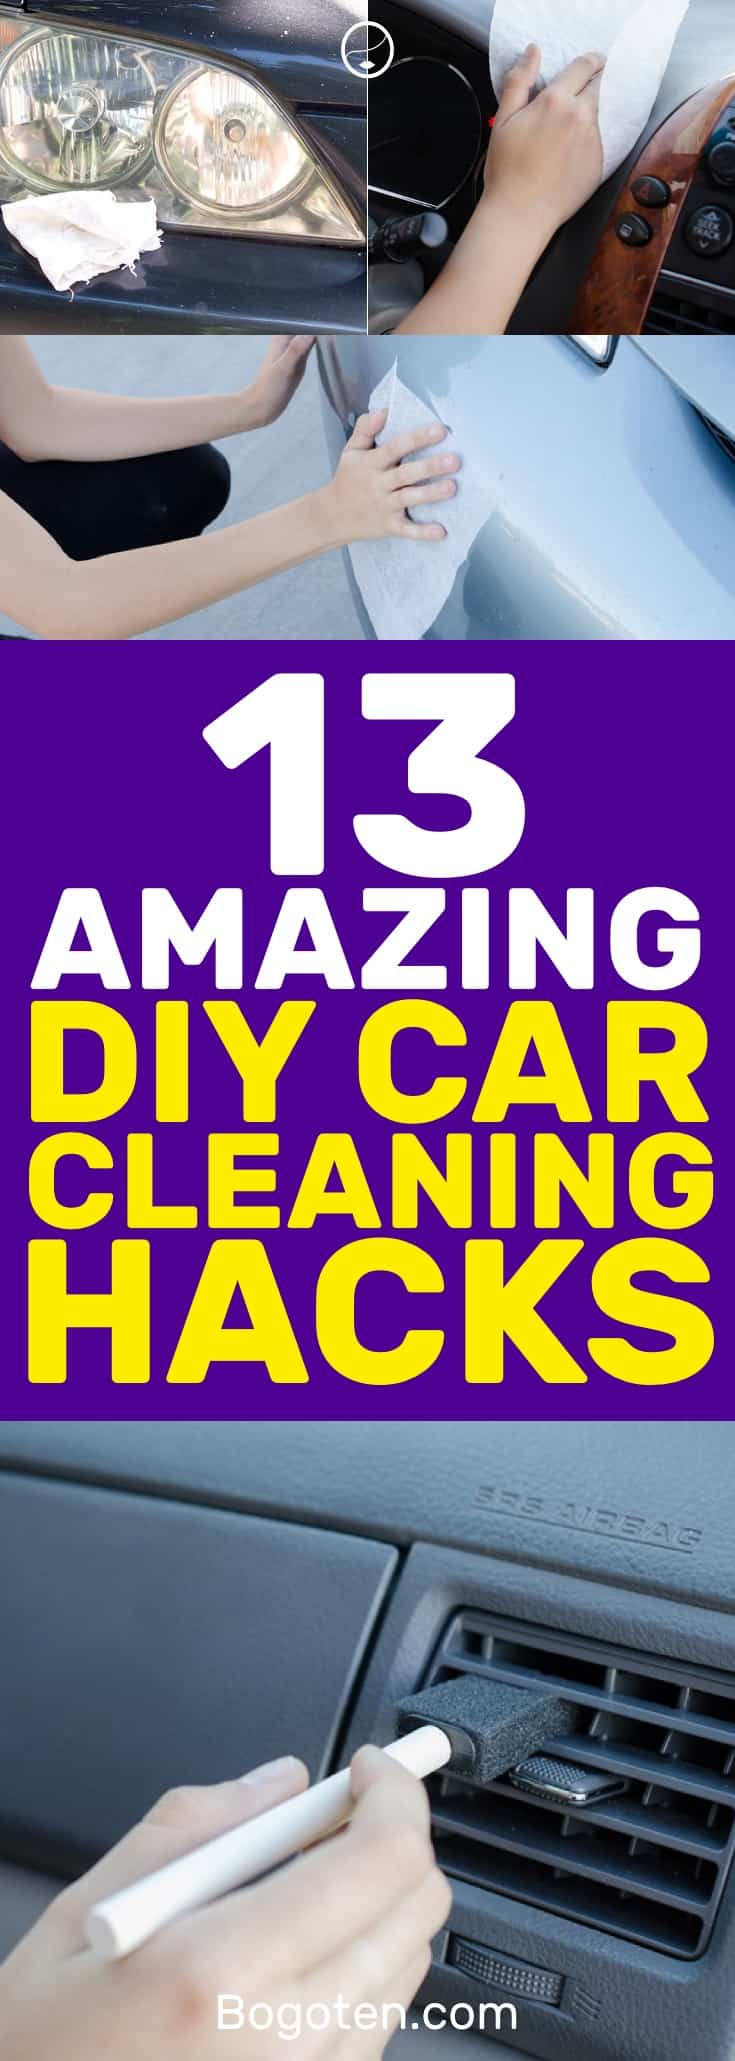 I hate having a dirty car and with these DIY car cleaning hacks I have no reason to have one! I love these ideas. #DIY #Cleaning